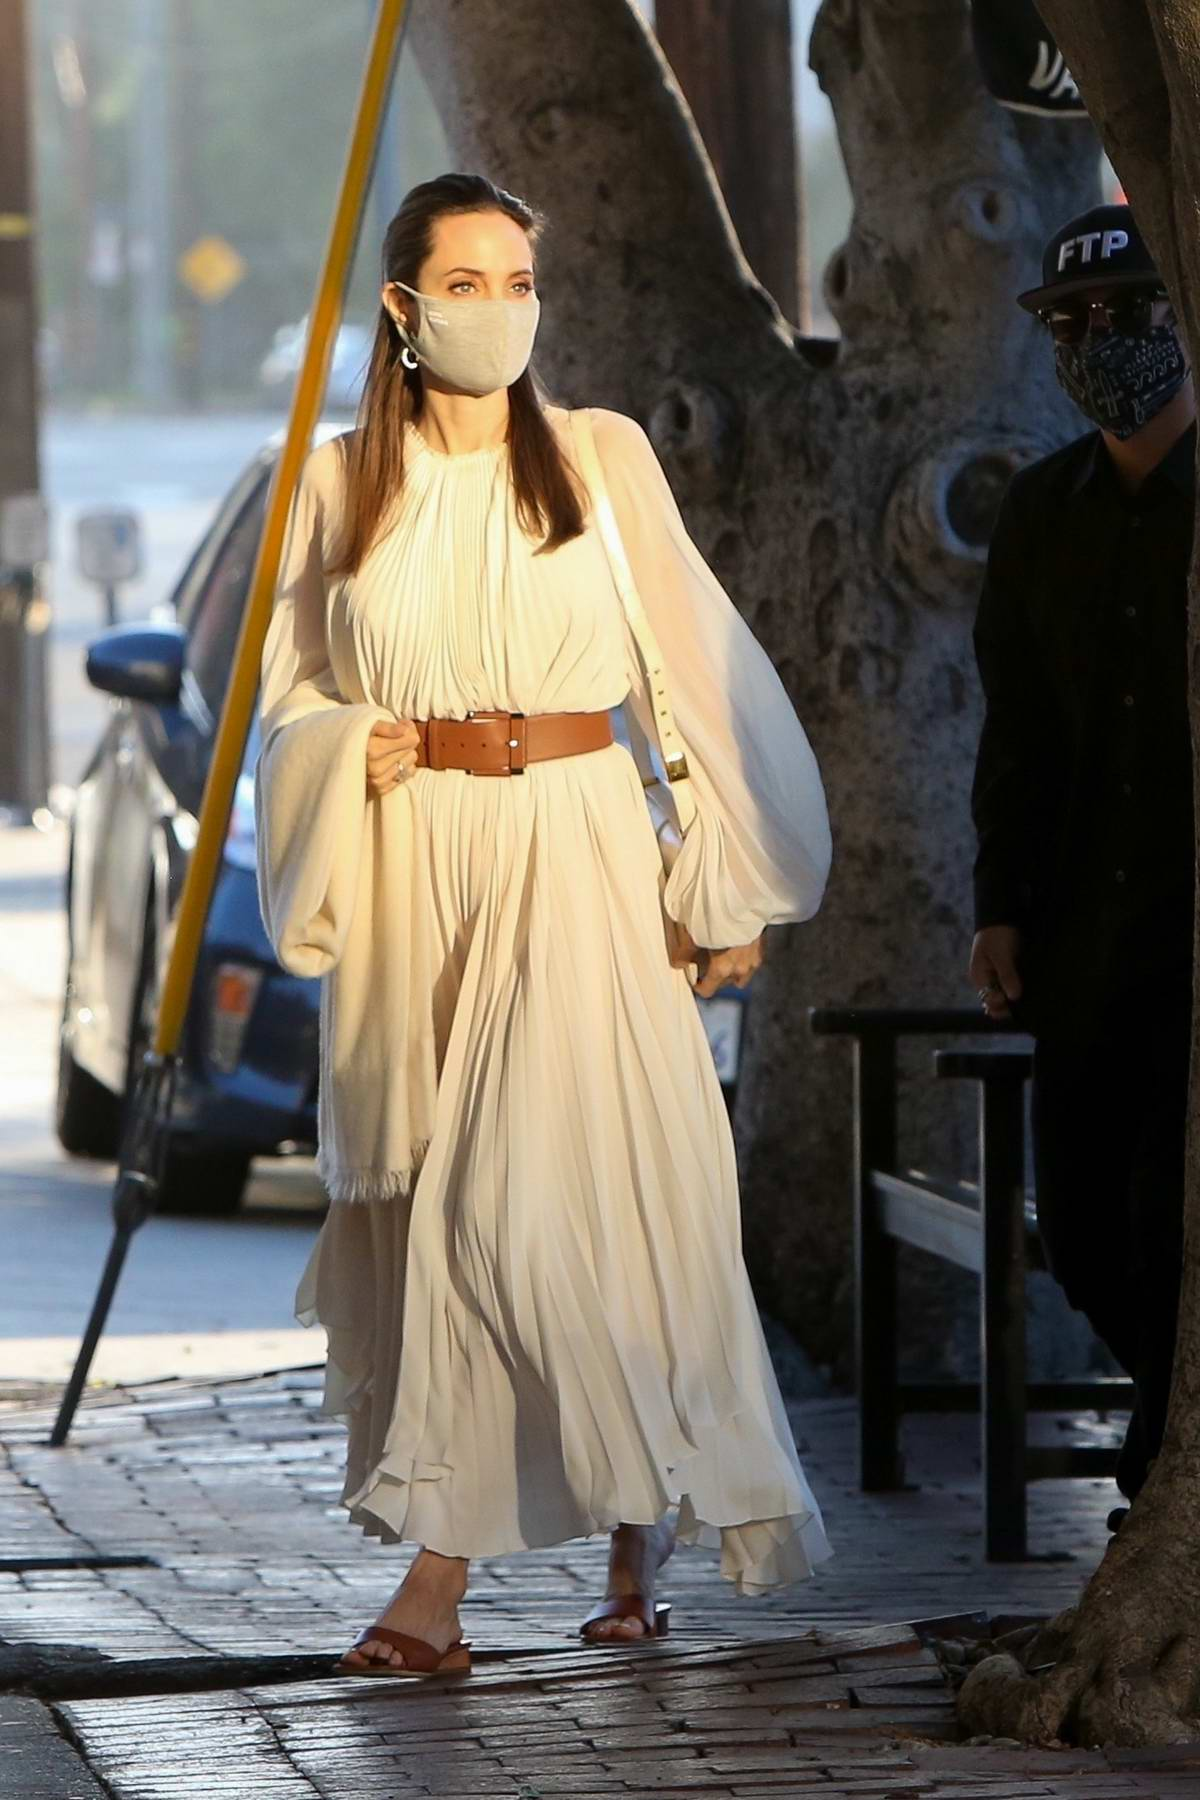 Angelina Jolie looks chic in a white dress while out for dinner with son Pax at AOC restaurant in West Hollywood, California